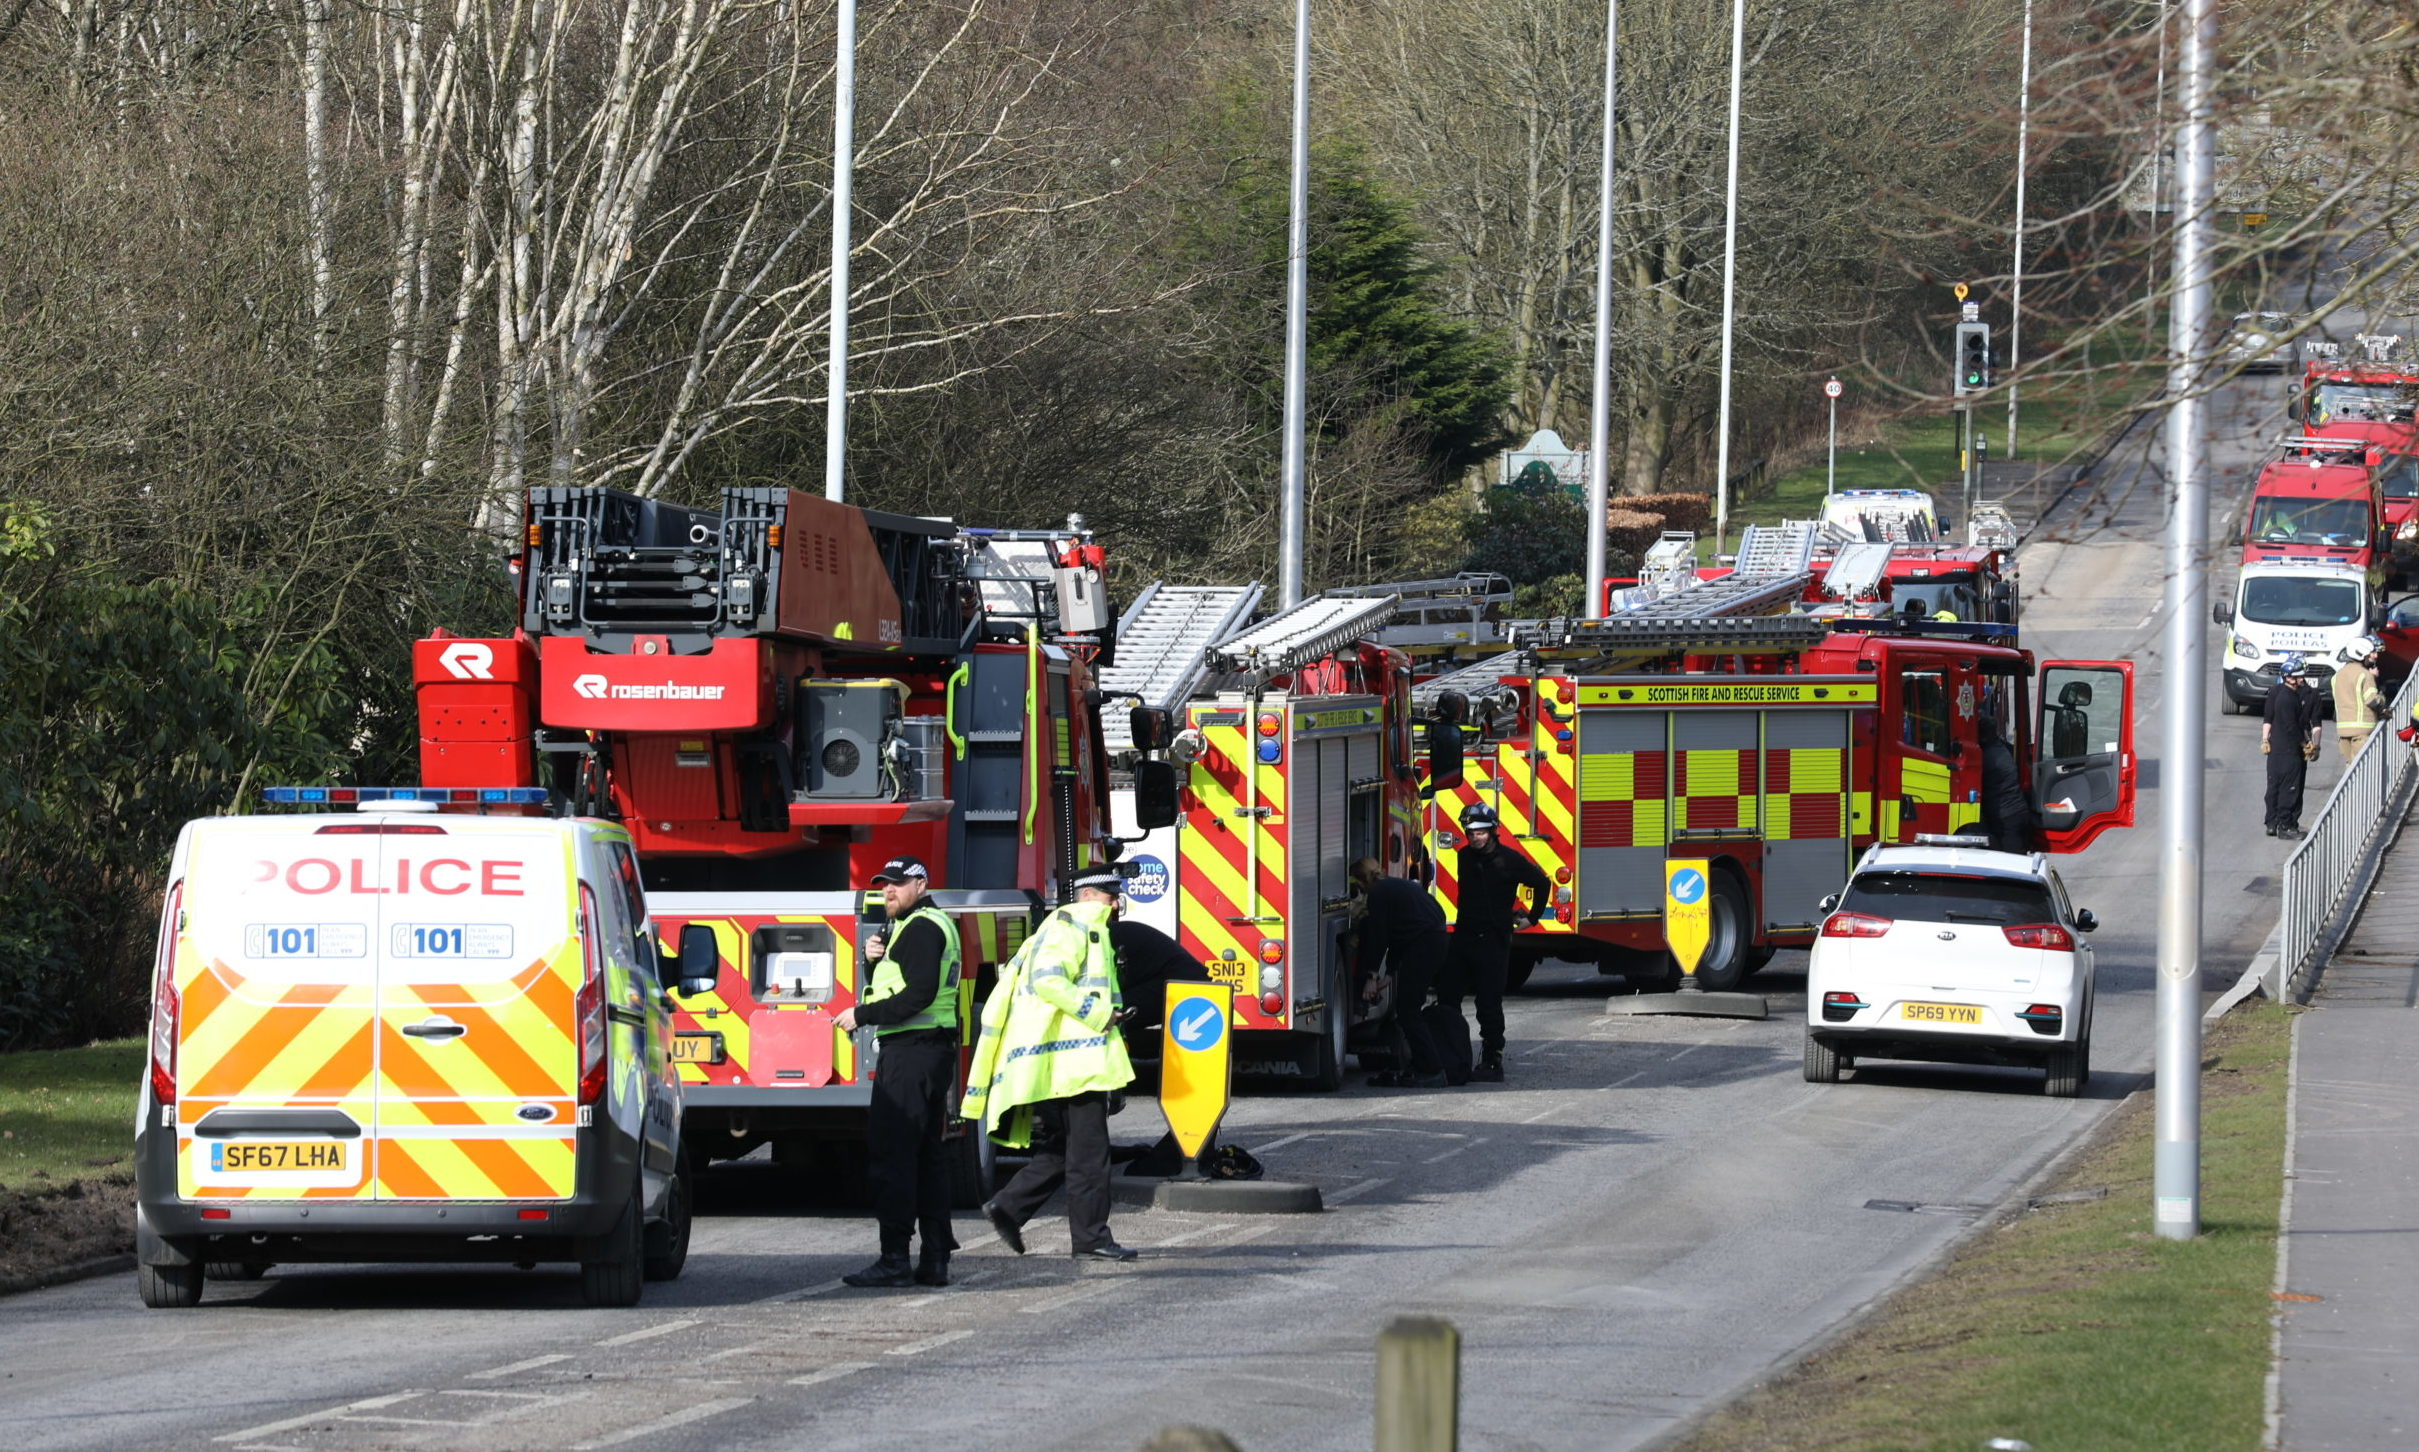 Emergency services at Riverside Park in Glenrothes.